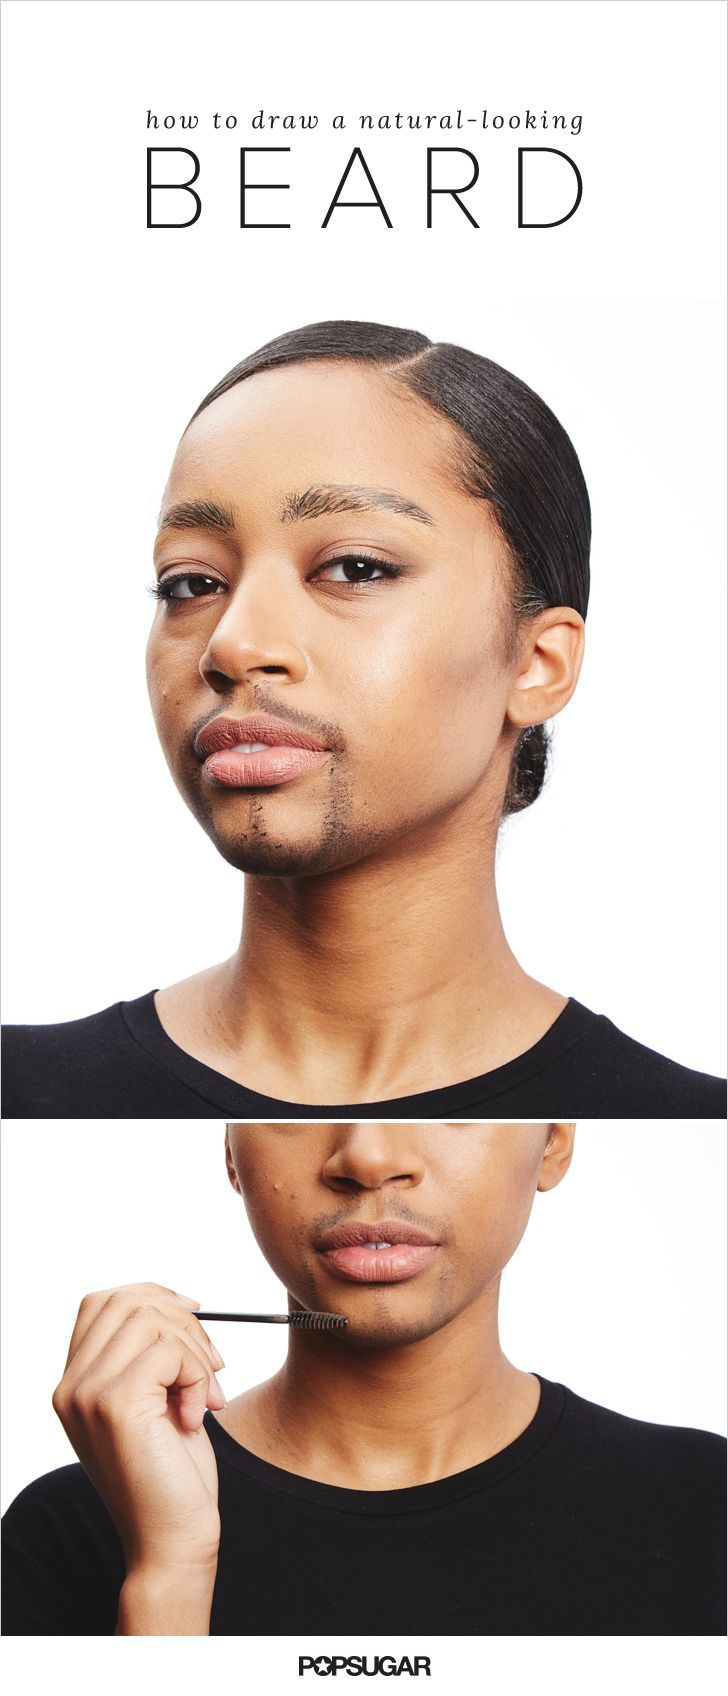 We can predict that male-to-female and female-to-male transformations are going to be superpopular this Halloween. The hardest part of a guy-to-gal gender swap is the facial hair. An authentic beard is all in the application. Use a mascara wand to apply a longwear gel product like Make Up For Ever Aqua Brow ($22) in a stippling motion. Use two separate colors to make it look more like a five o'clock shadow.